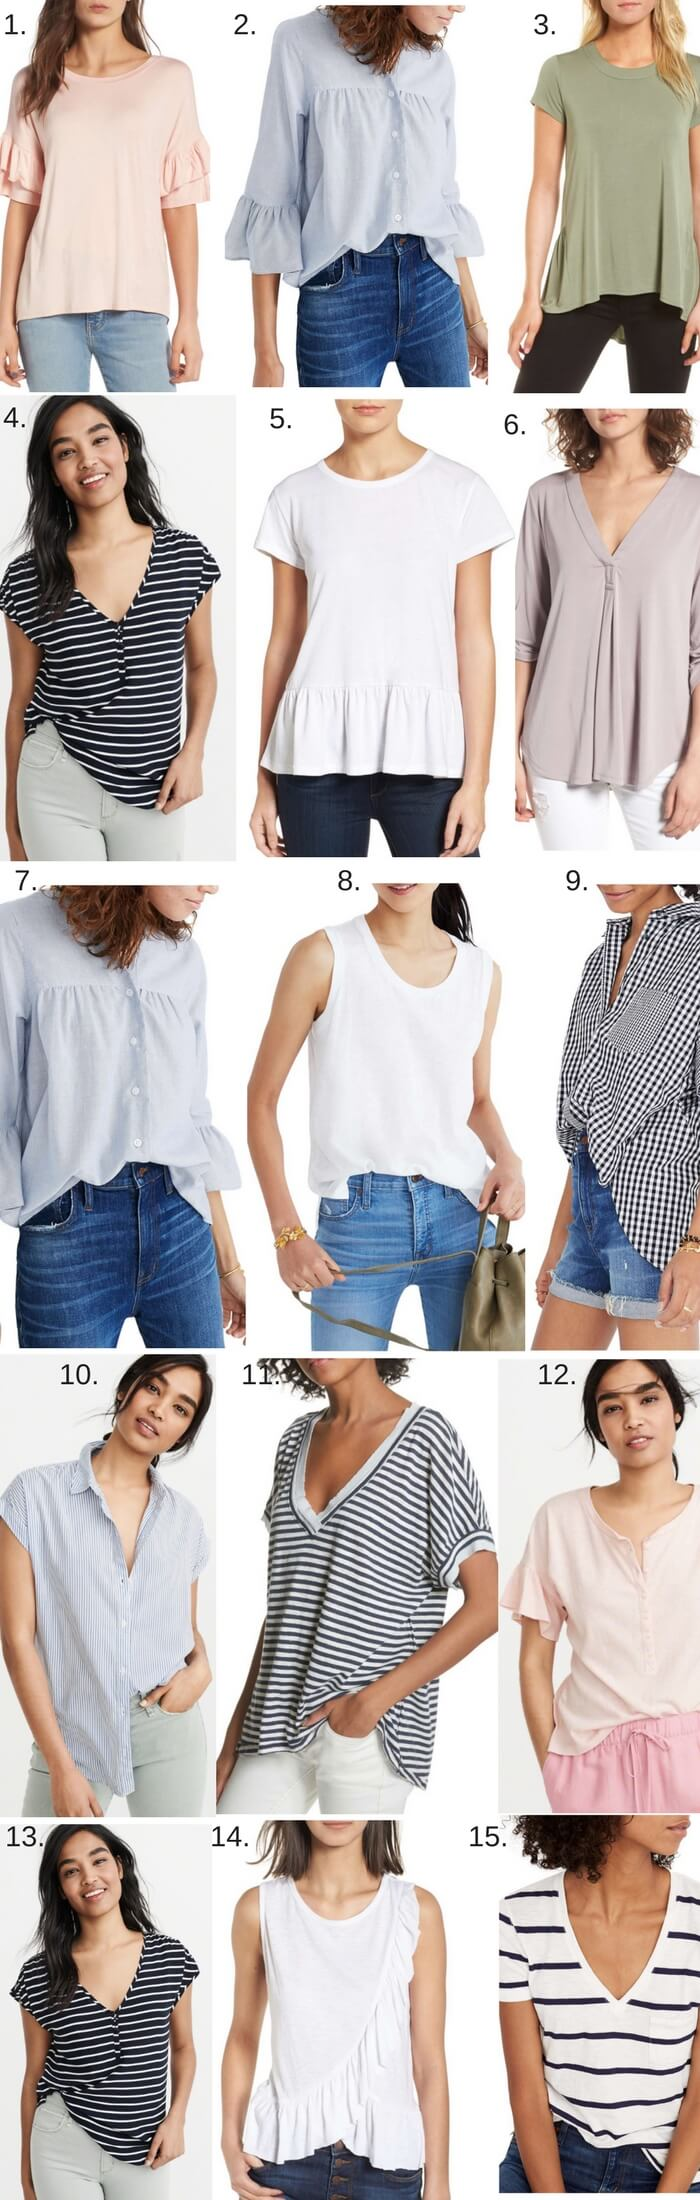 15 casual tops for Spring